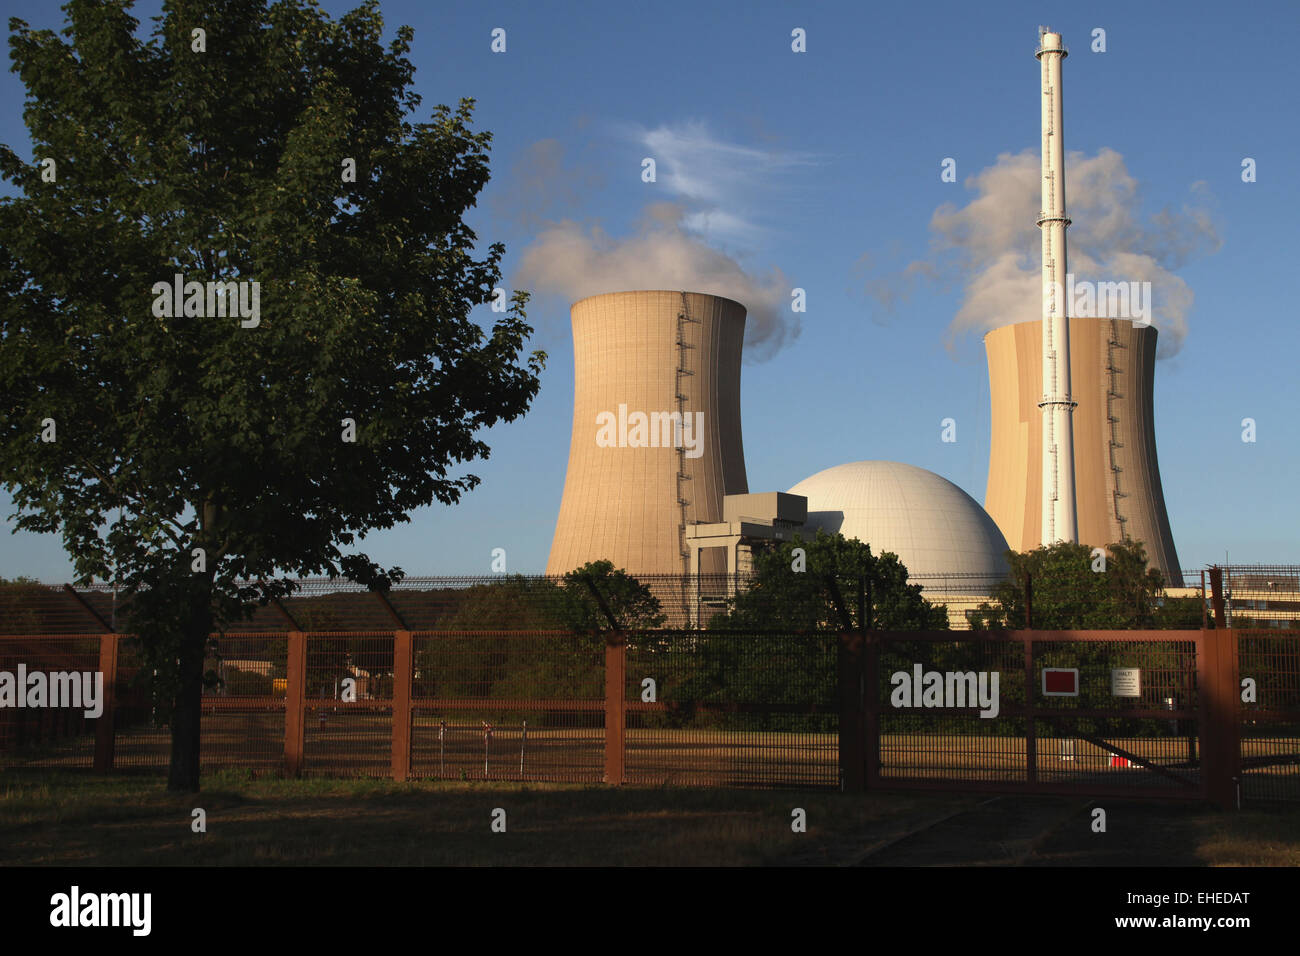 Nuclear Power Plant - Stock Image